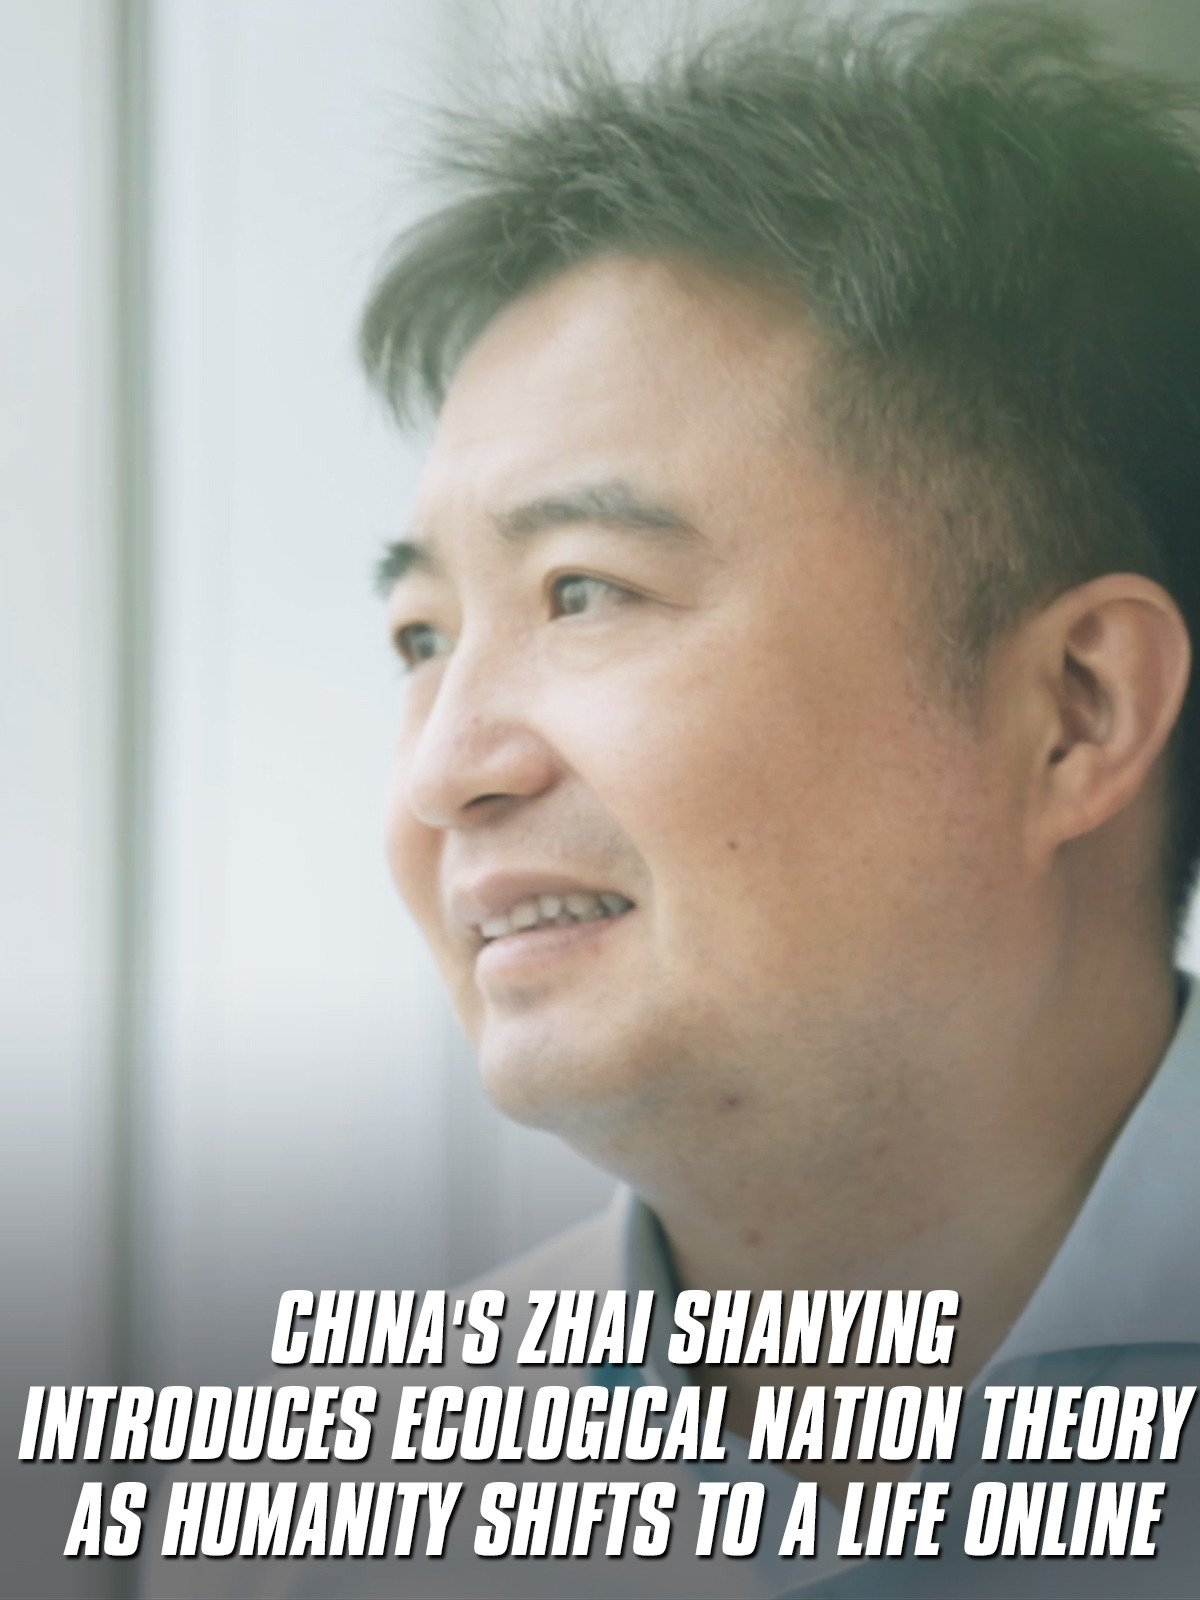 China's Zhai Shanying Introduces Ecological Nation Theory As Humanity Shifts to a Life Online